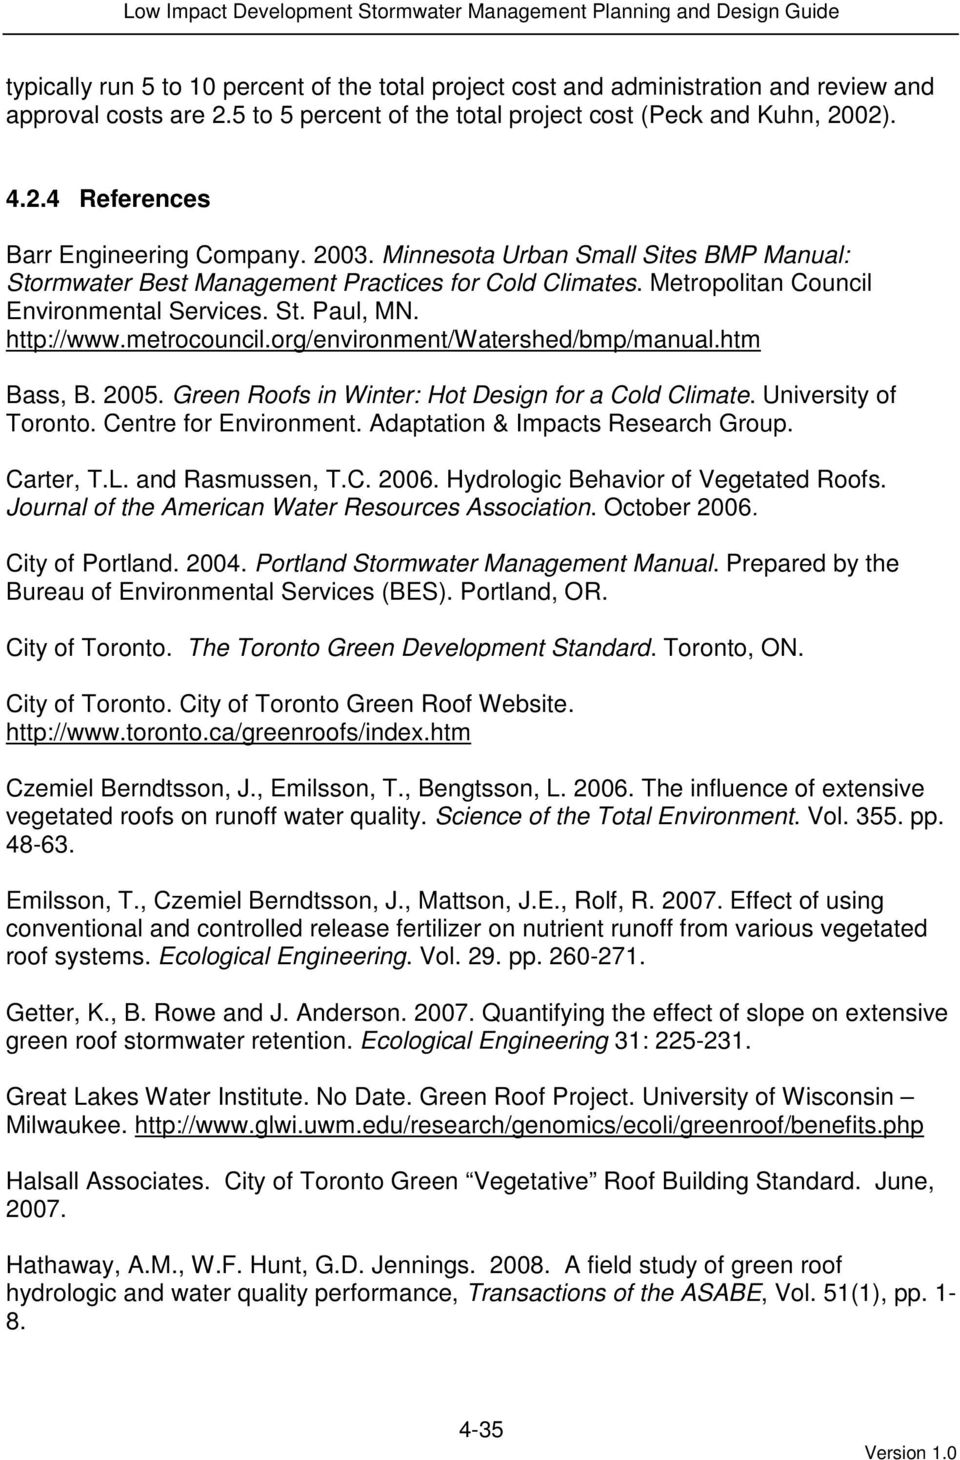 org/environment/watershed/bmp/manual.htm Bass, B. 2005. Green Roofs in Winter: Hot Design for a Cold Climate. University of Toronto. Centre for Environment. Adaptation & Impacts Research Group.